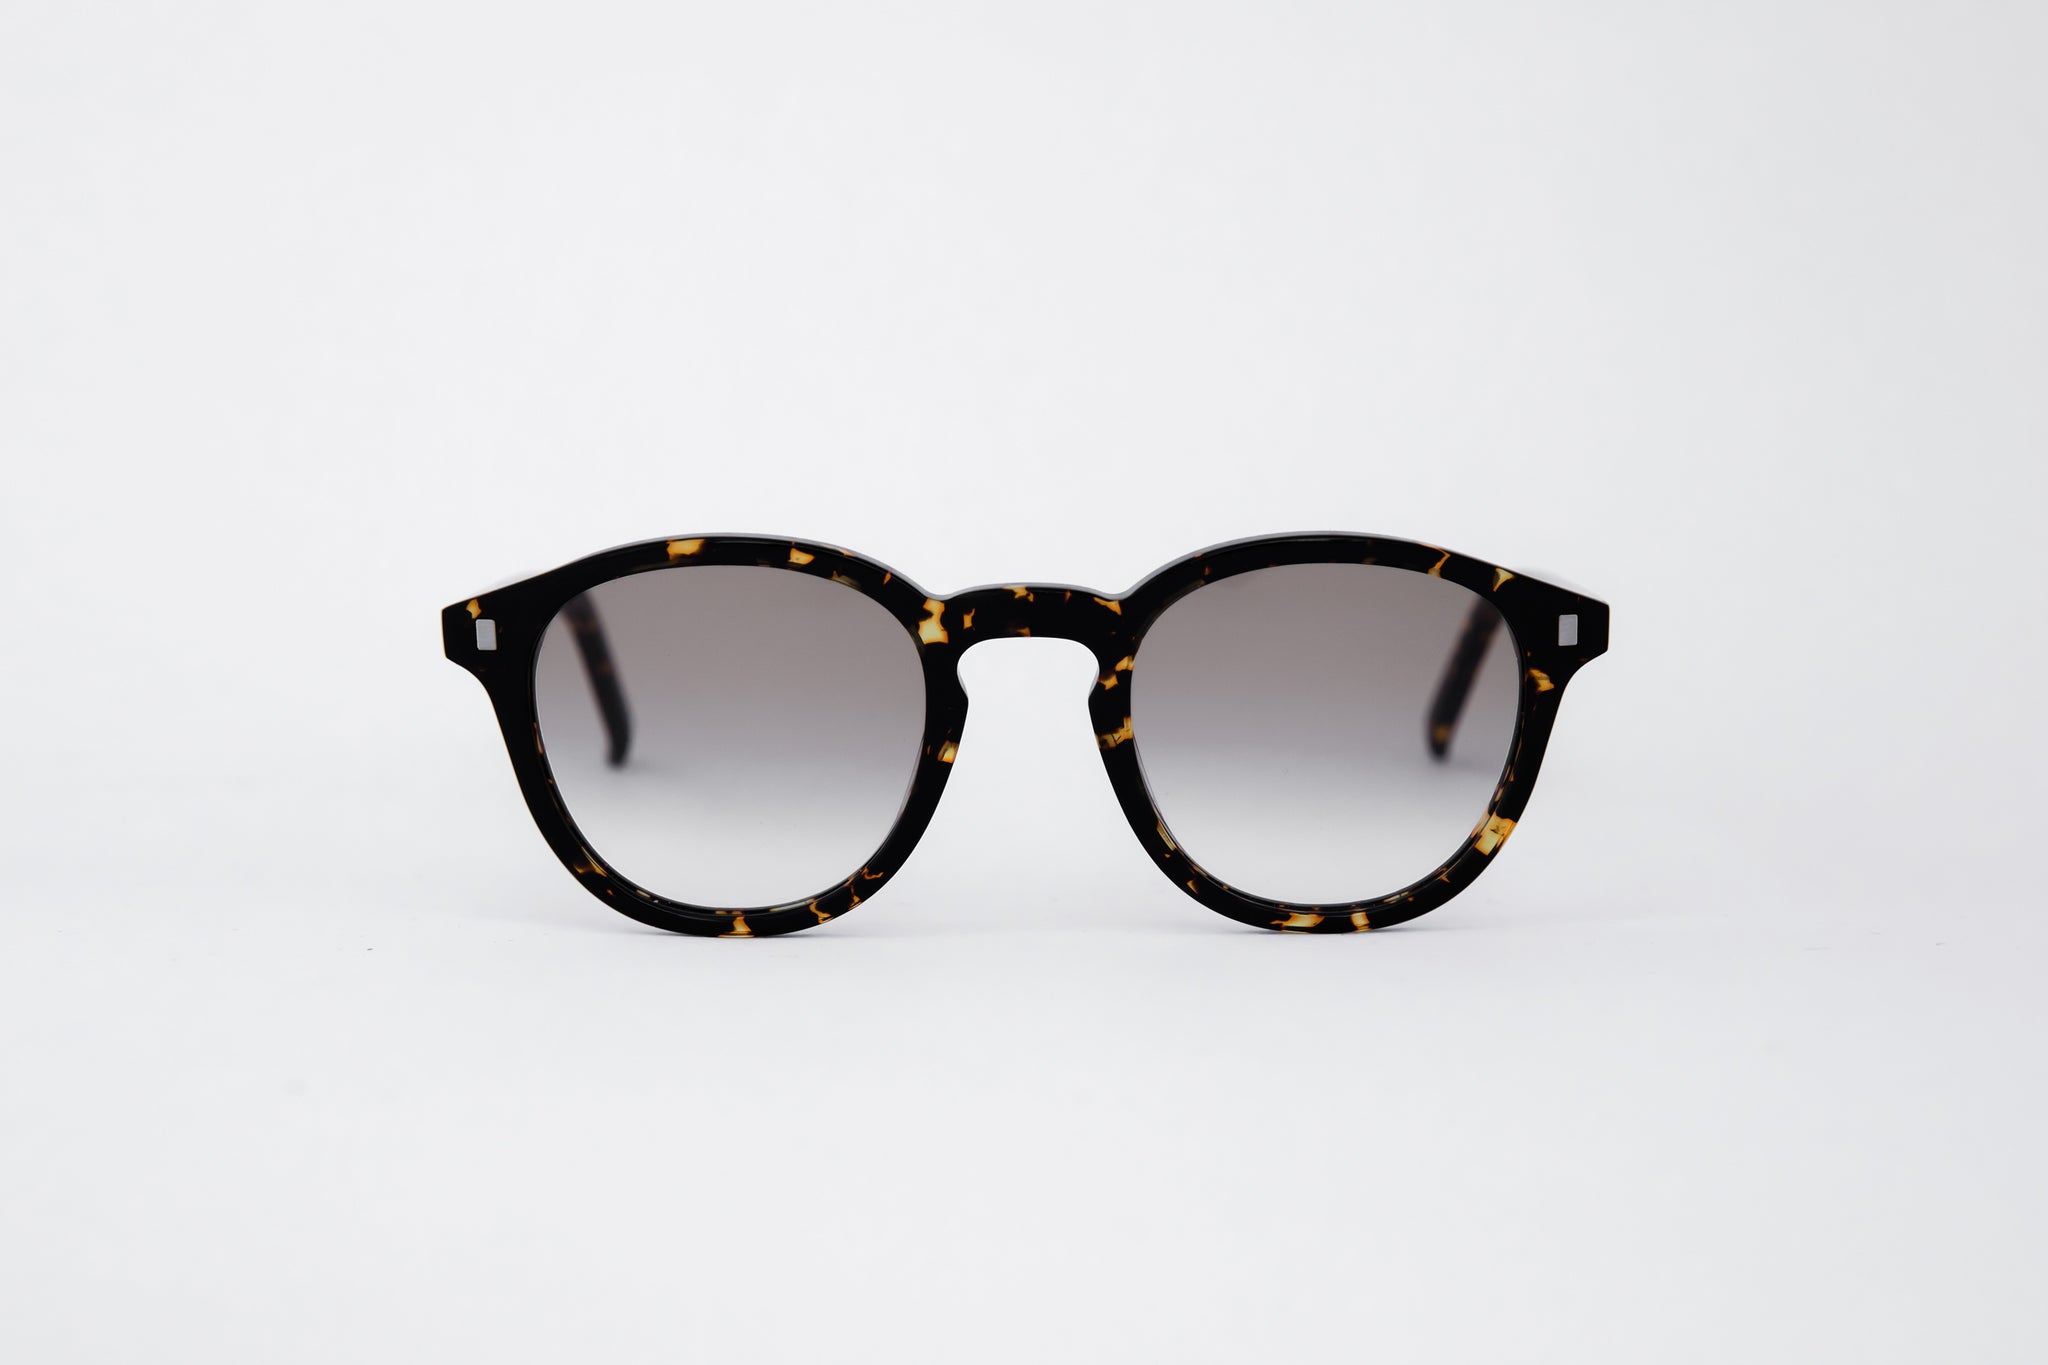 monokel eyewear sunglasses nelson brown tortoise / brown gradient lens